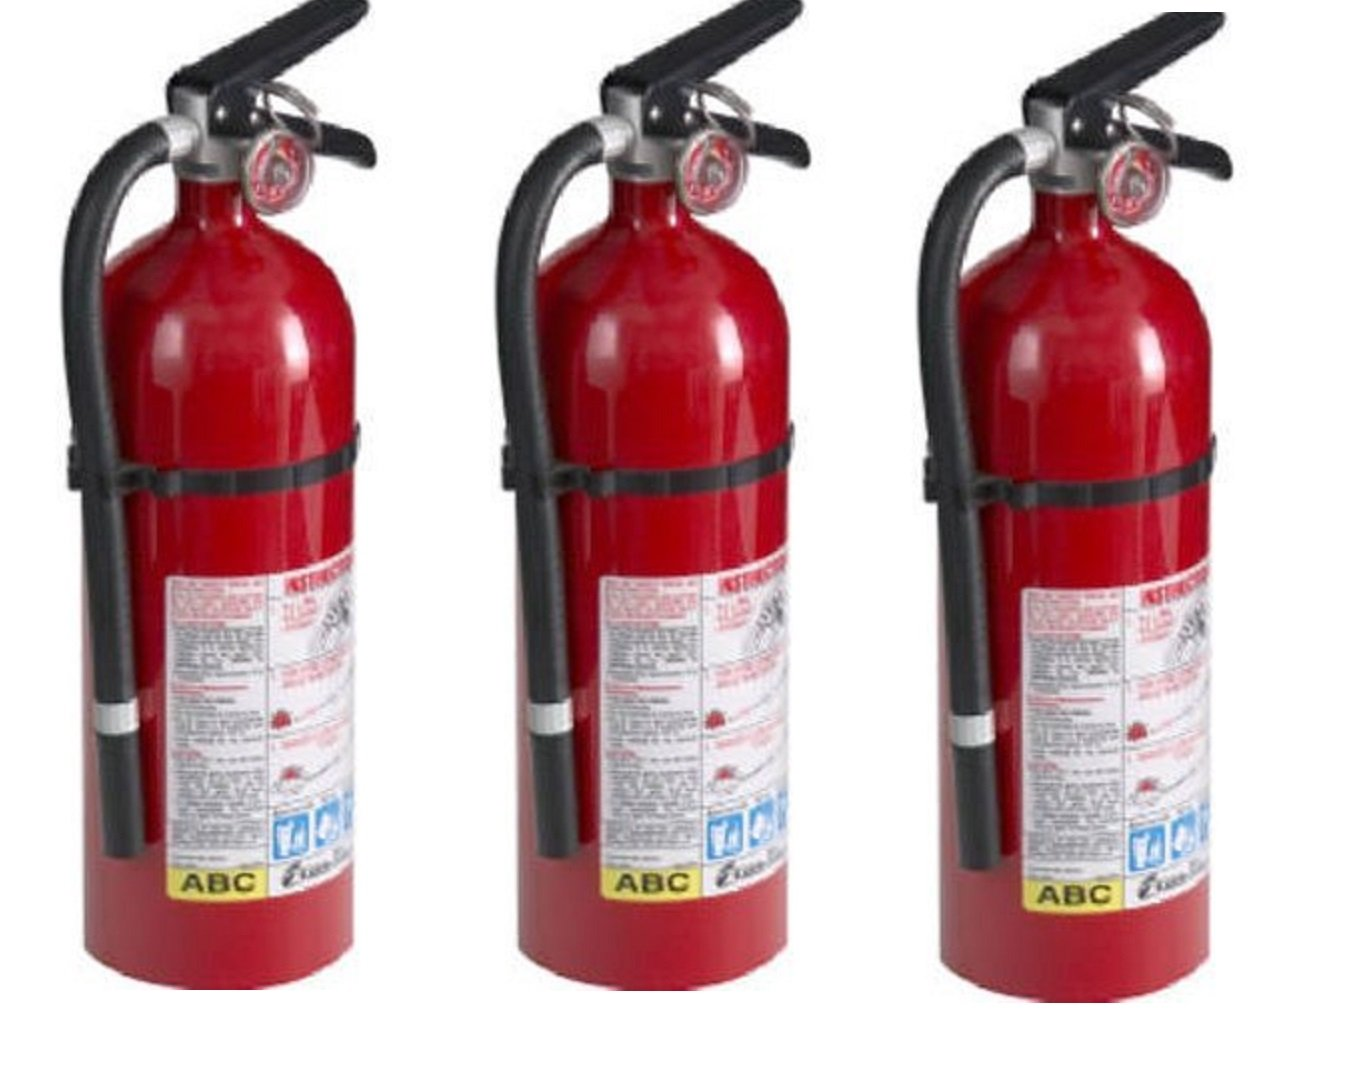 Kidde 21005779 Fire Extinguisher, ABC, 160CI, 4 lbs uRjKWY, 3Pack (Pro 210)